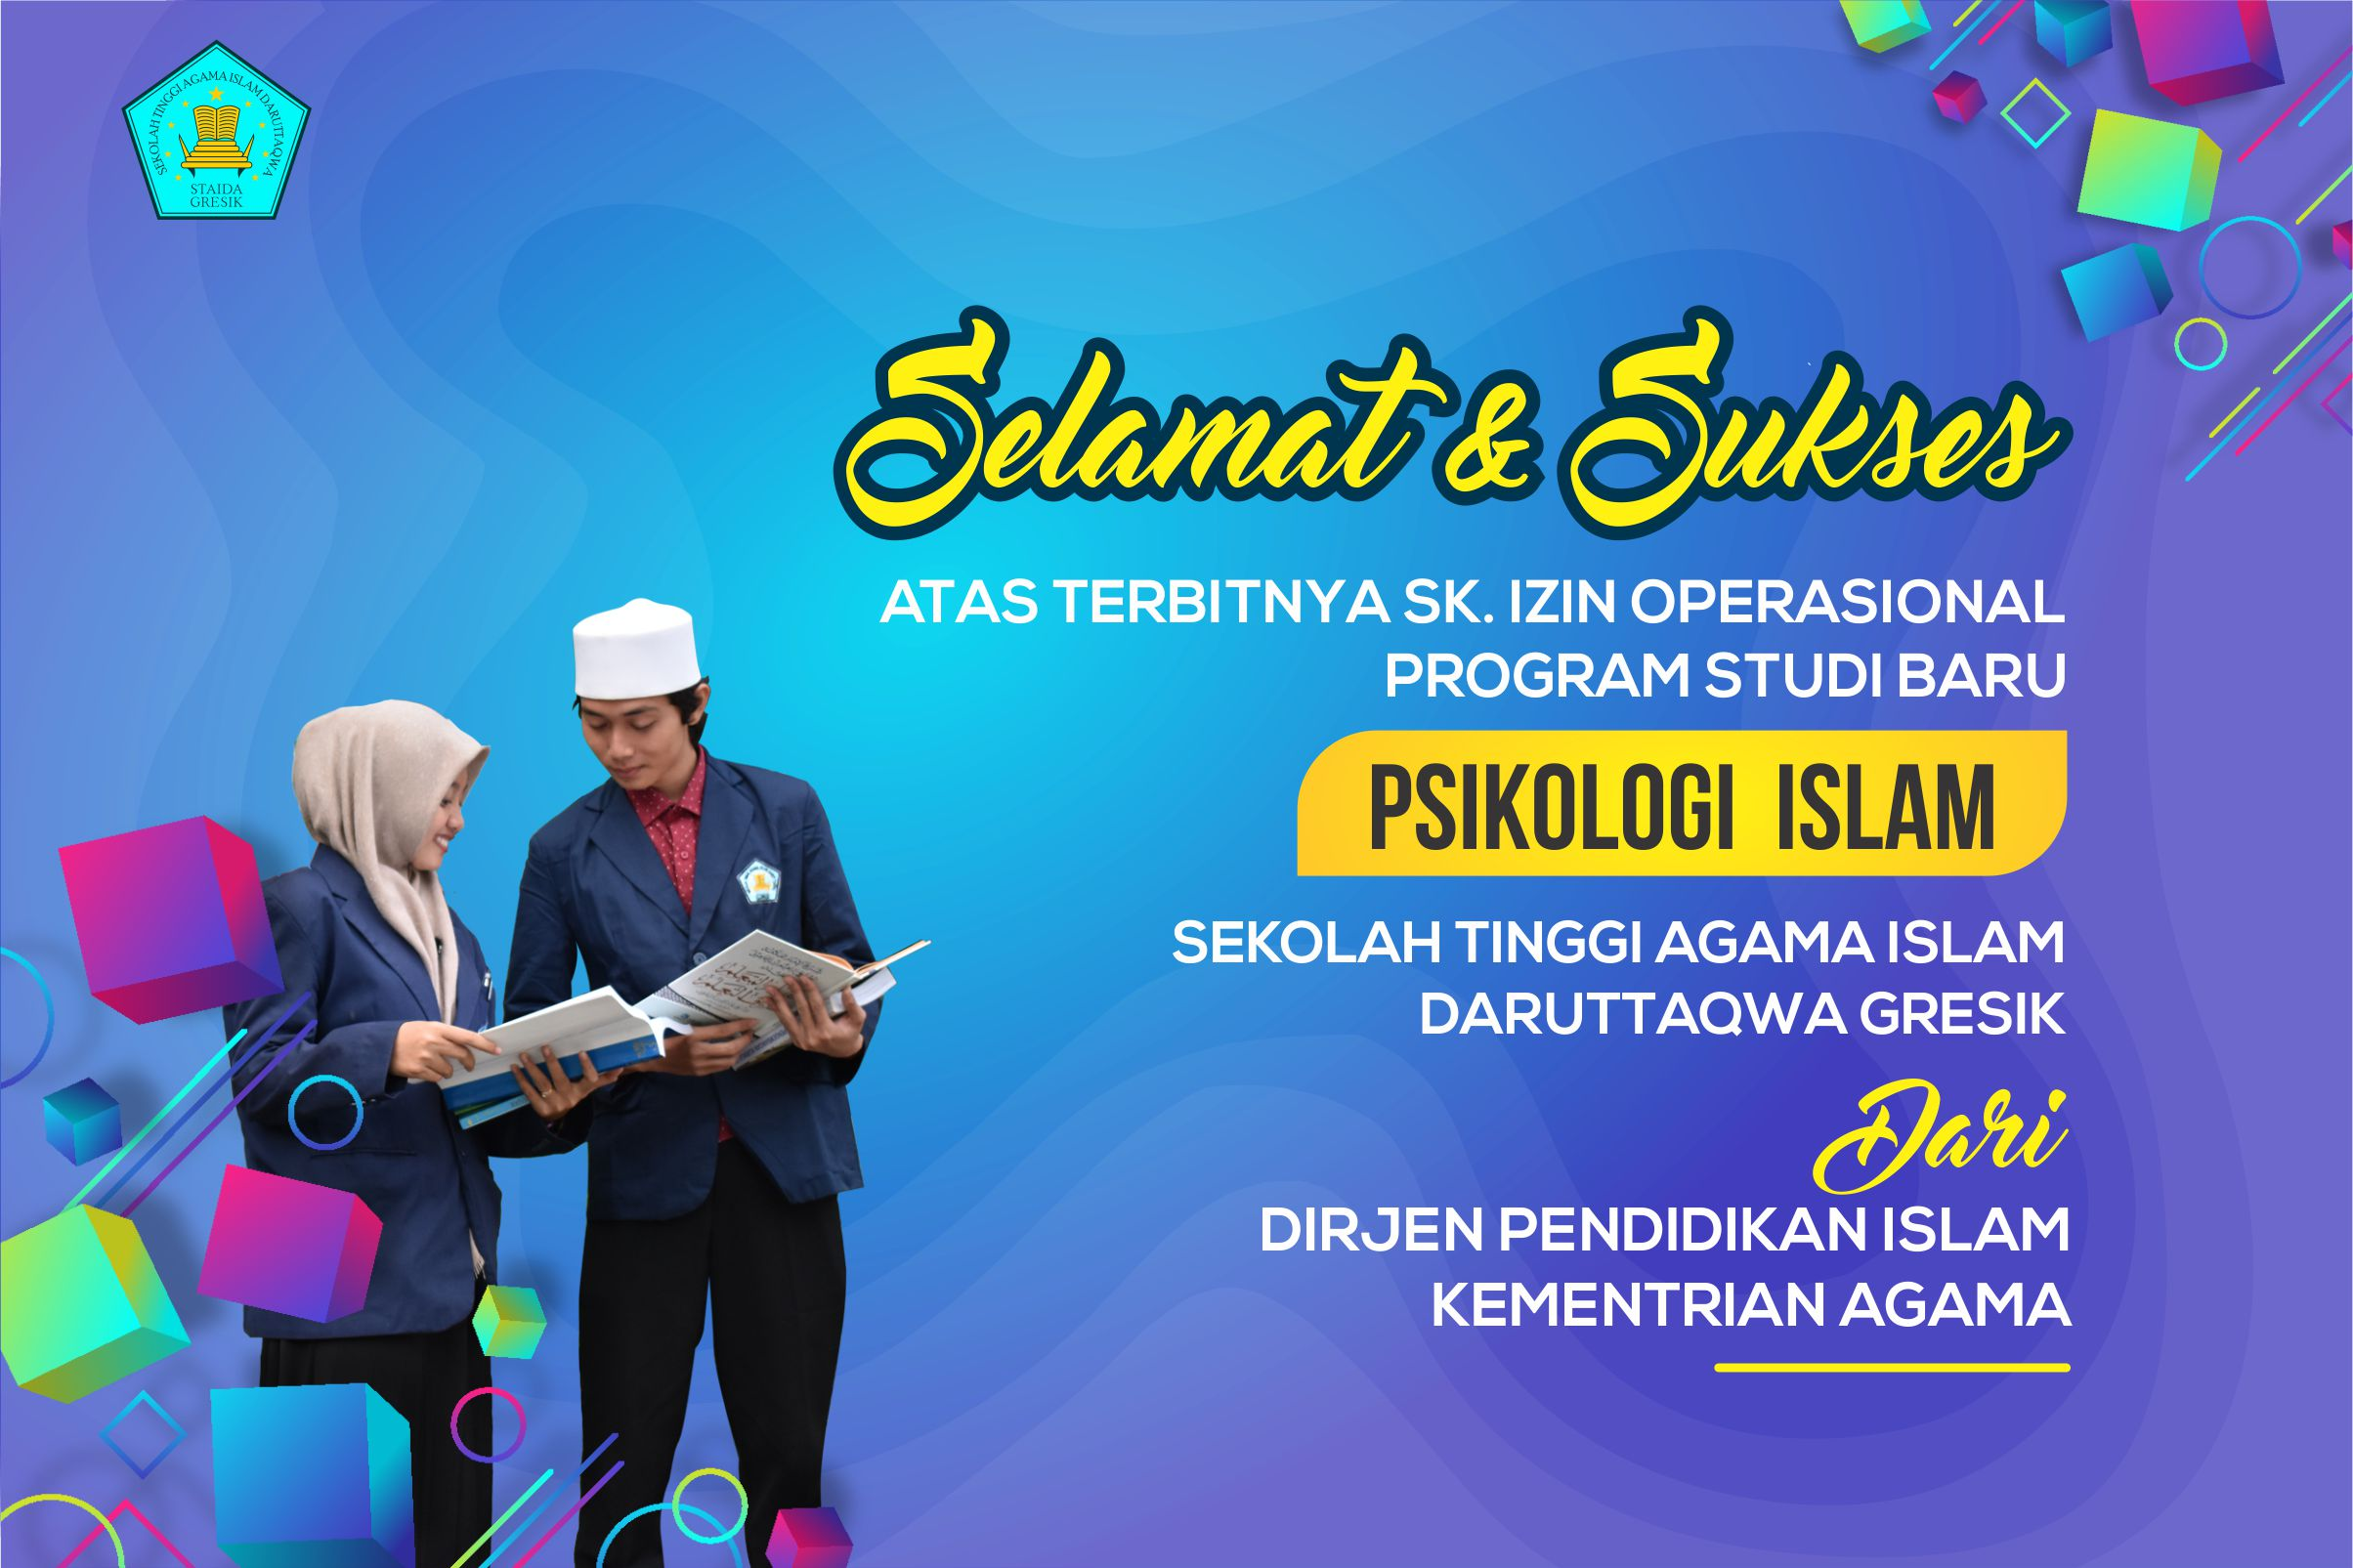 Opening of the New Islamic Psychology Study Program (PSI)